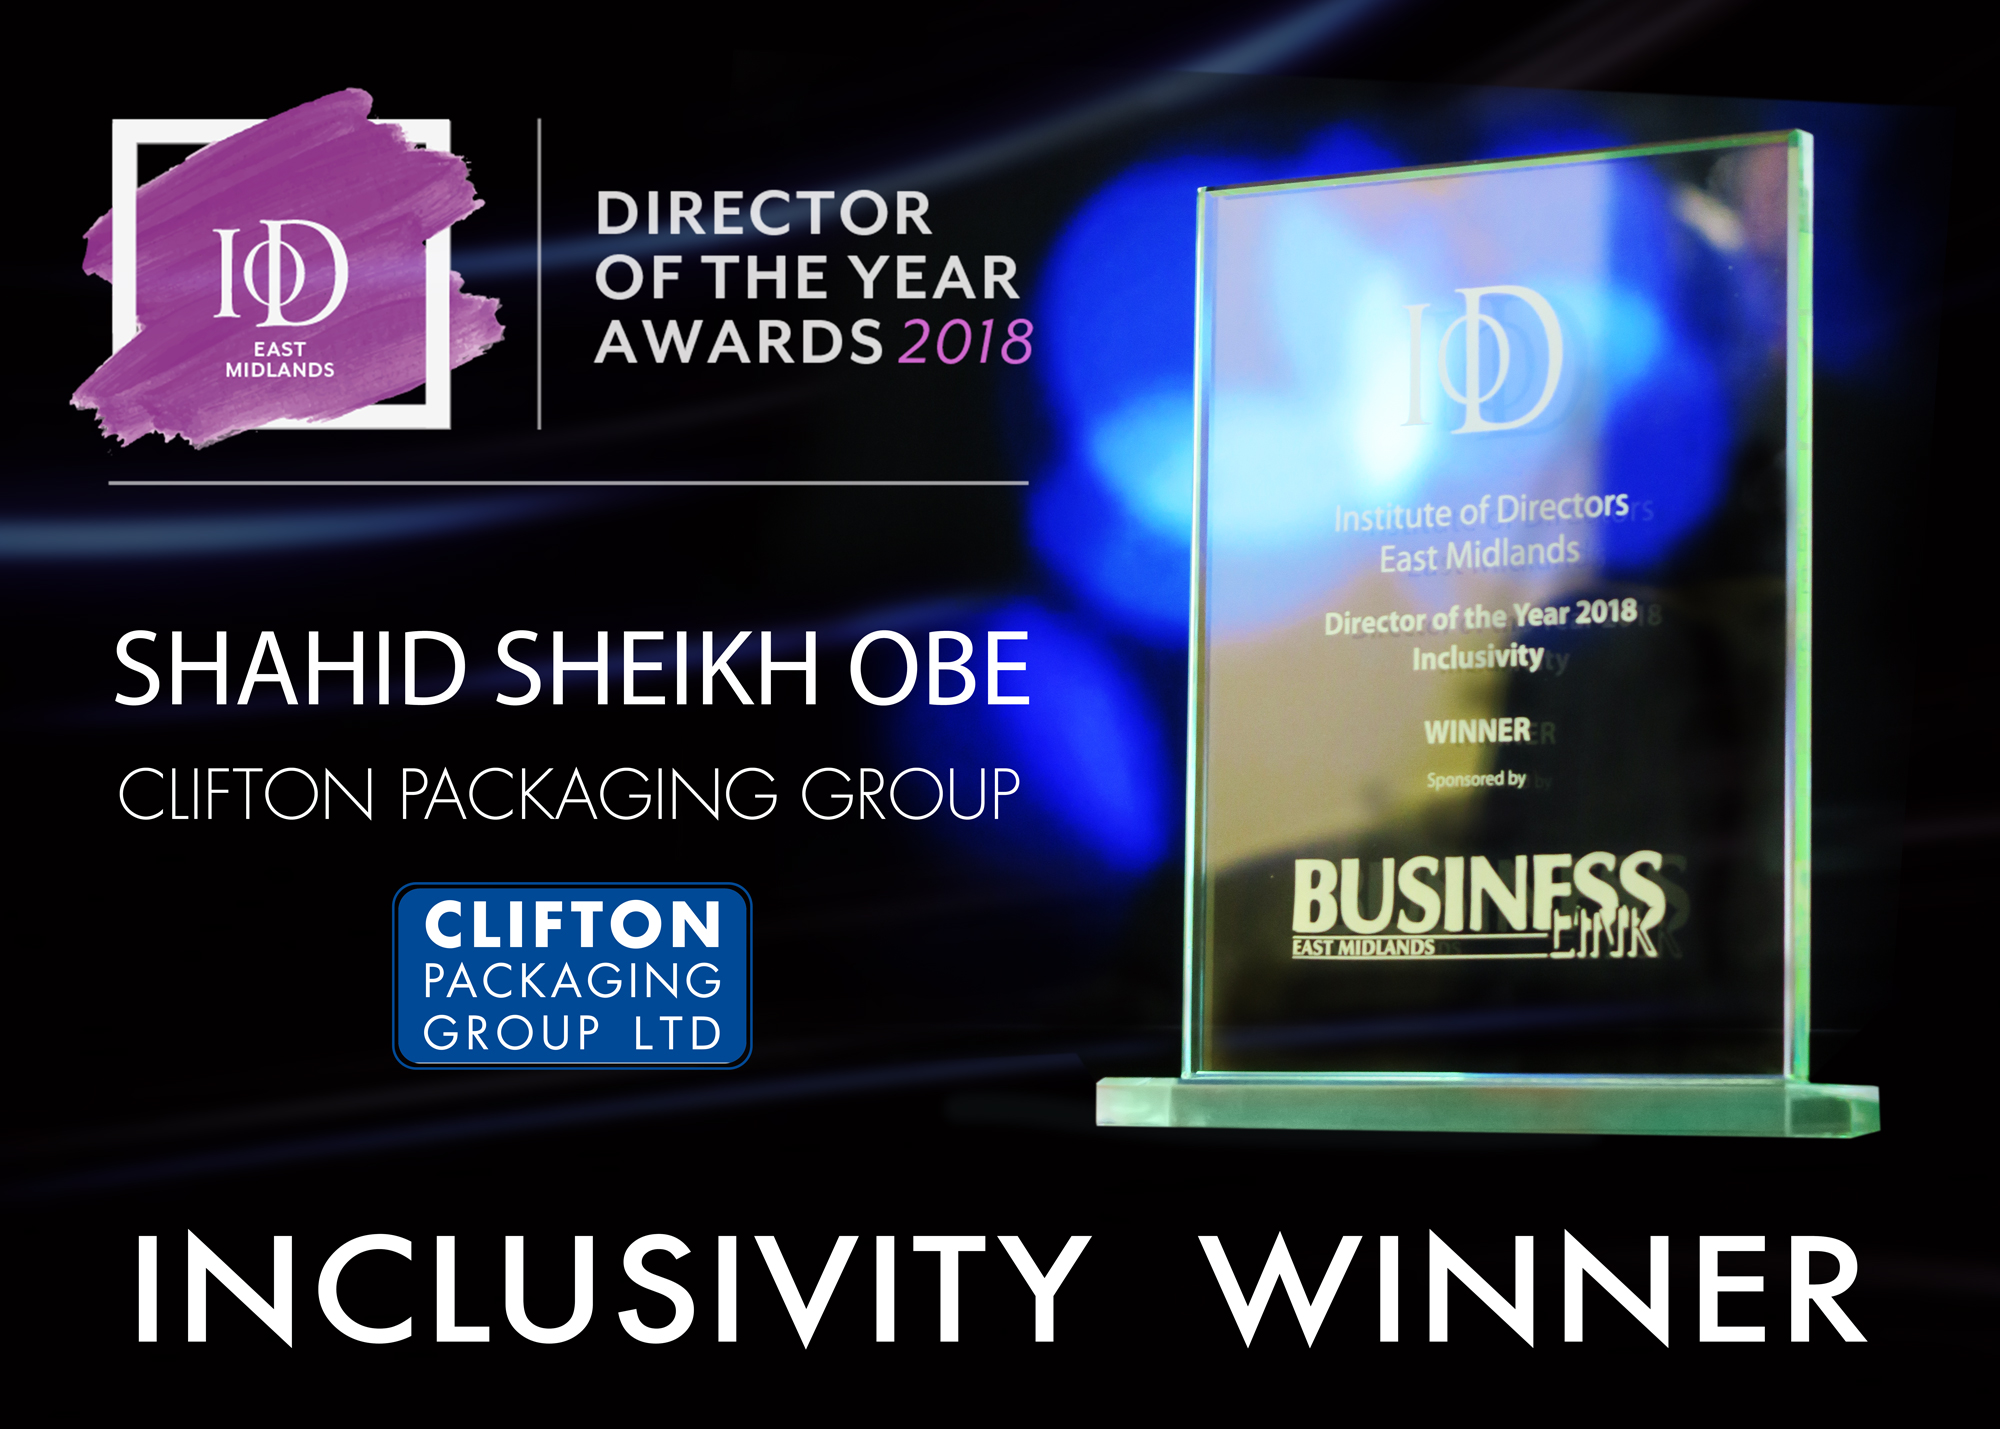 IoD - Director of the Year Awards 2018 - Inclusivity Winner